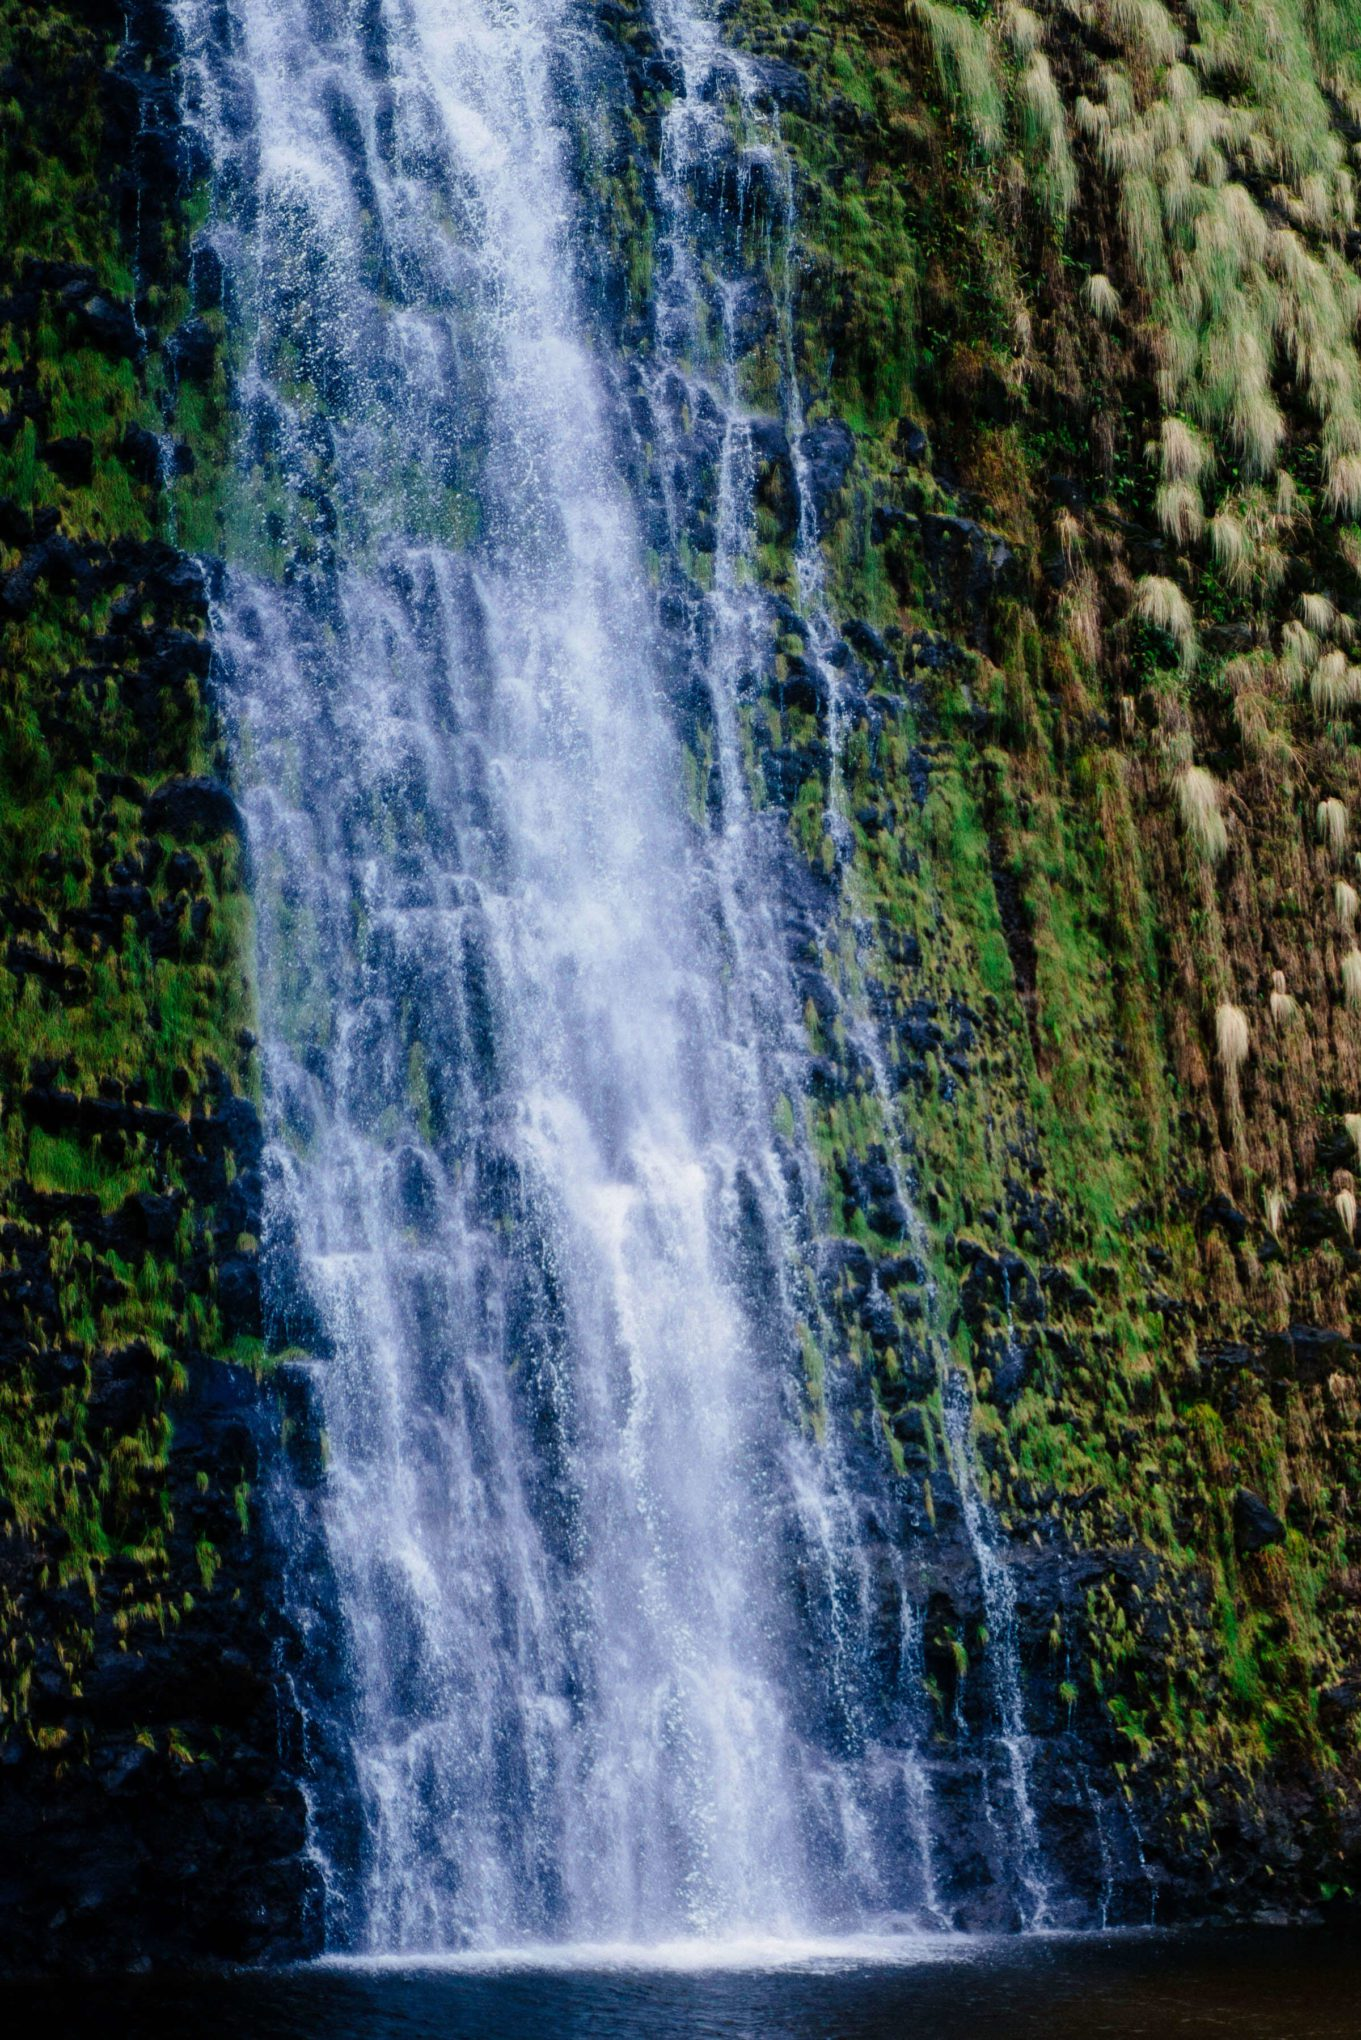 Visit Kona and the Big Island of Hawaii, see the waterfalls upclose, The Taste SF